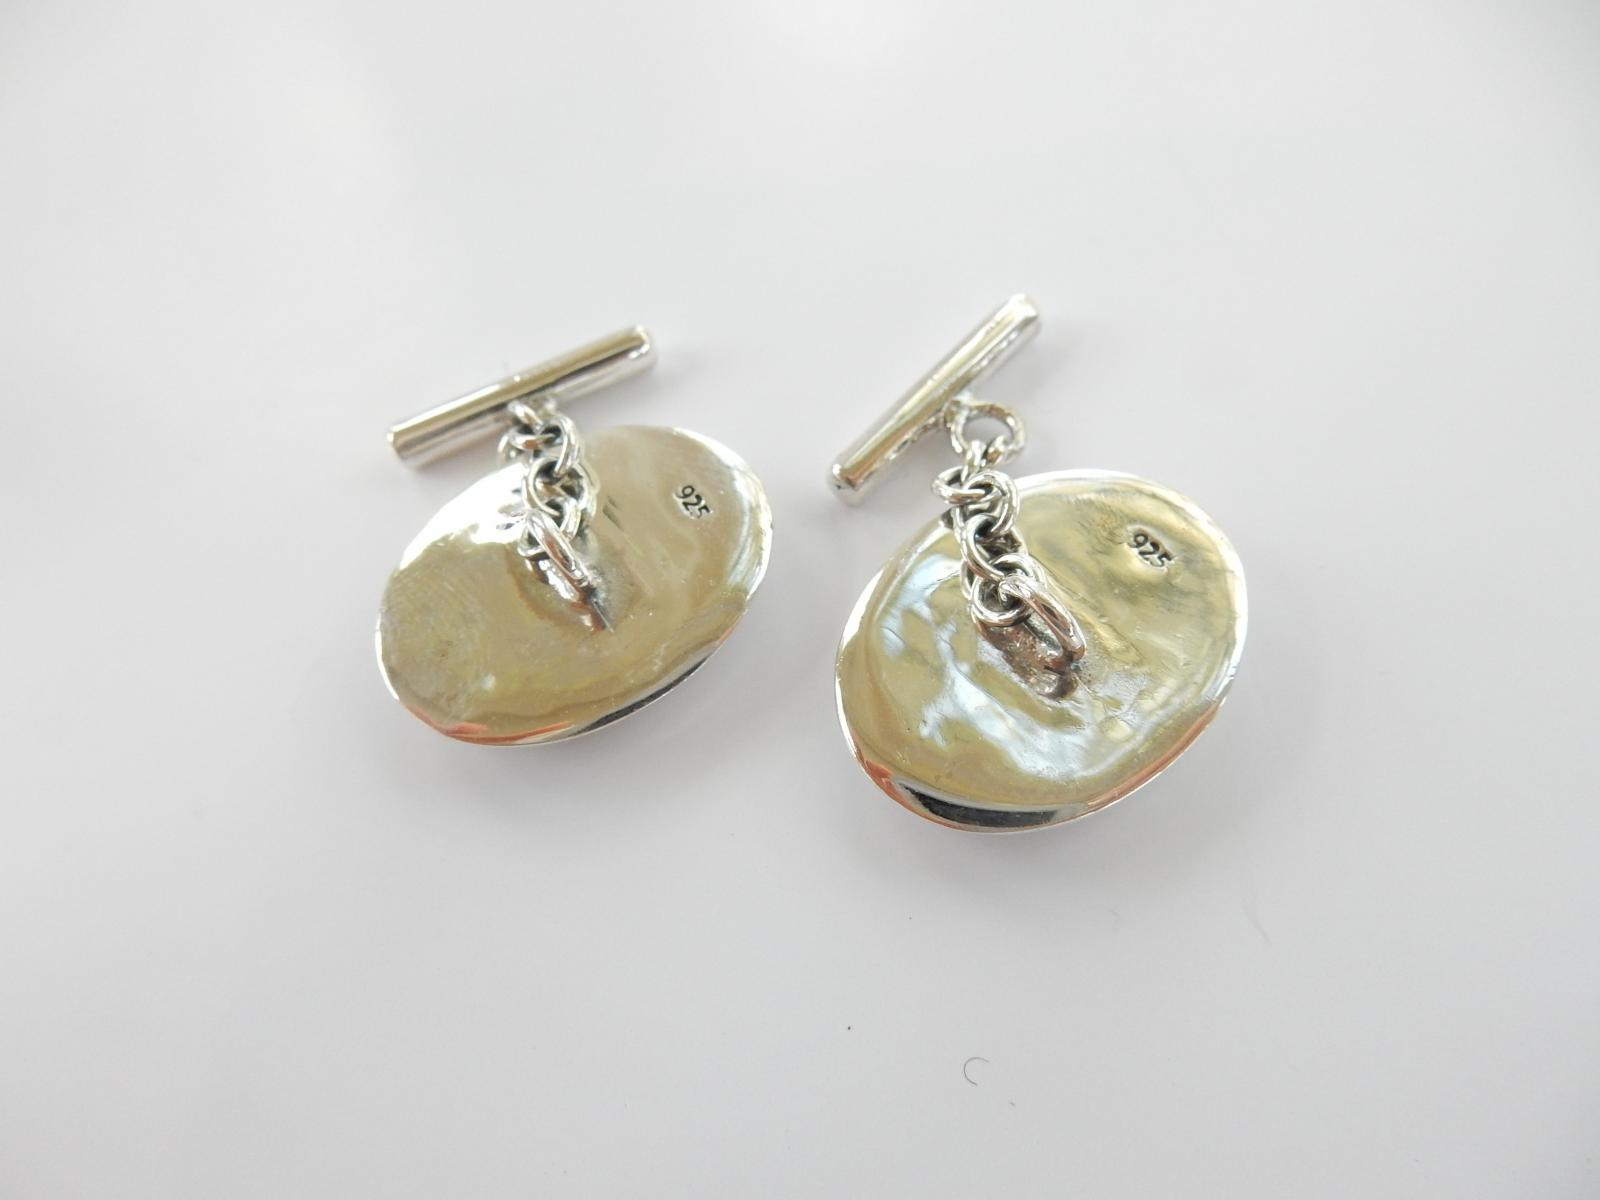 Photo of Sterling Silver Sexy Lady Cufflinks